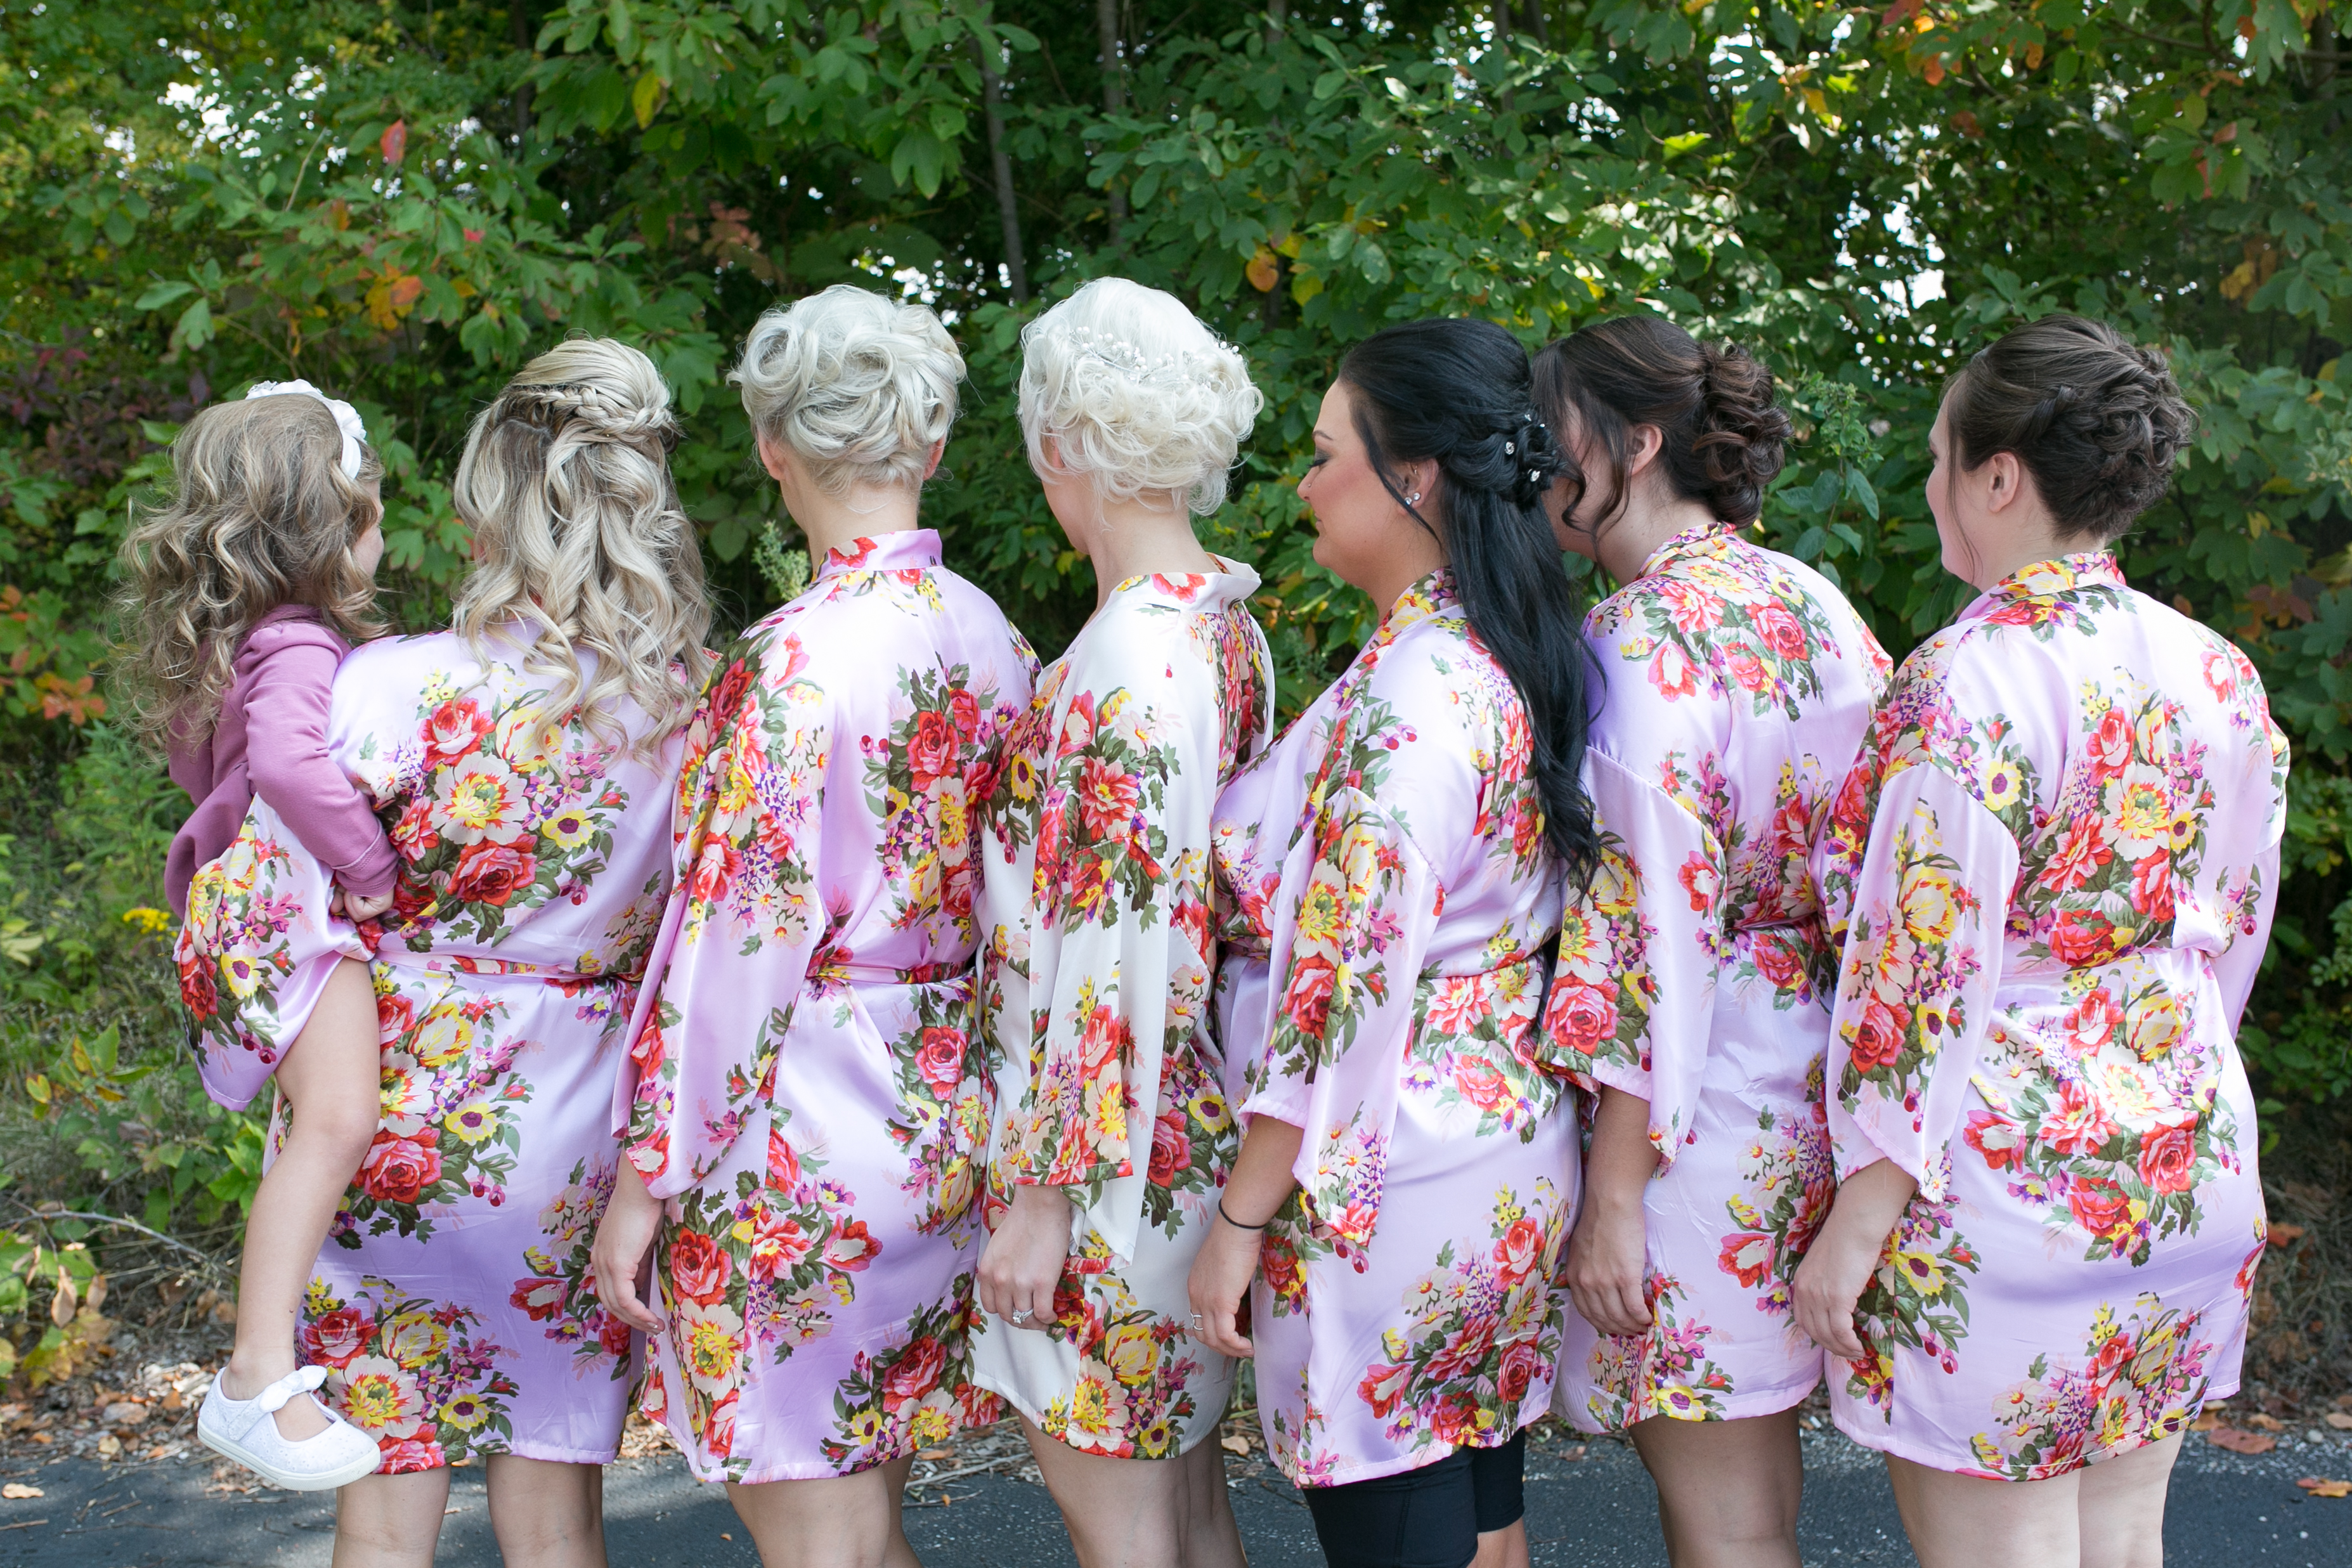 A perfect fall wedding; bridesmaids getting ready for the day in matching robes.